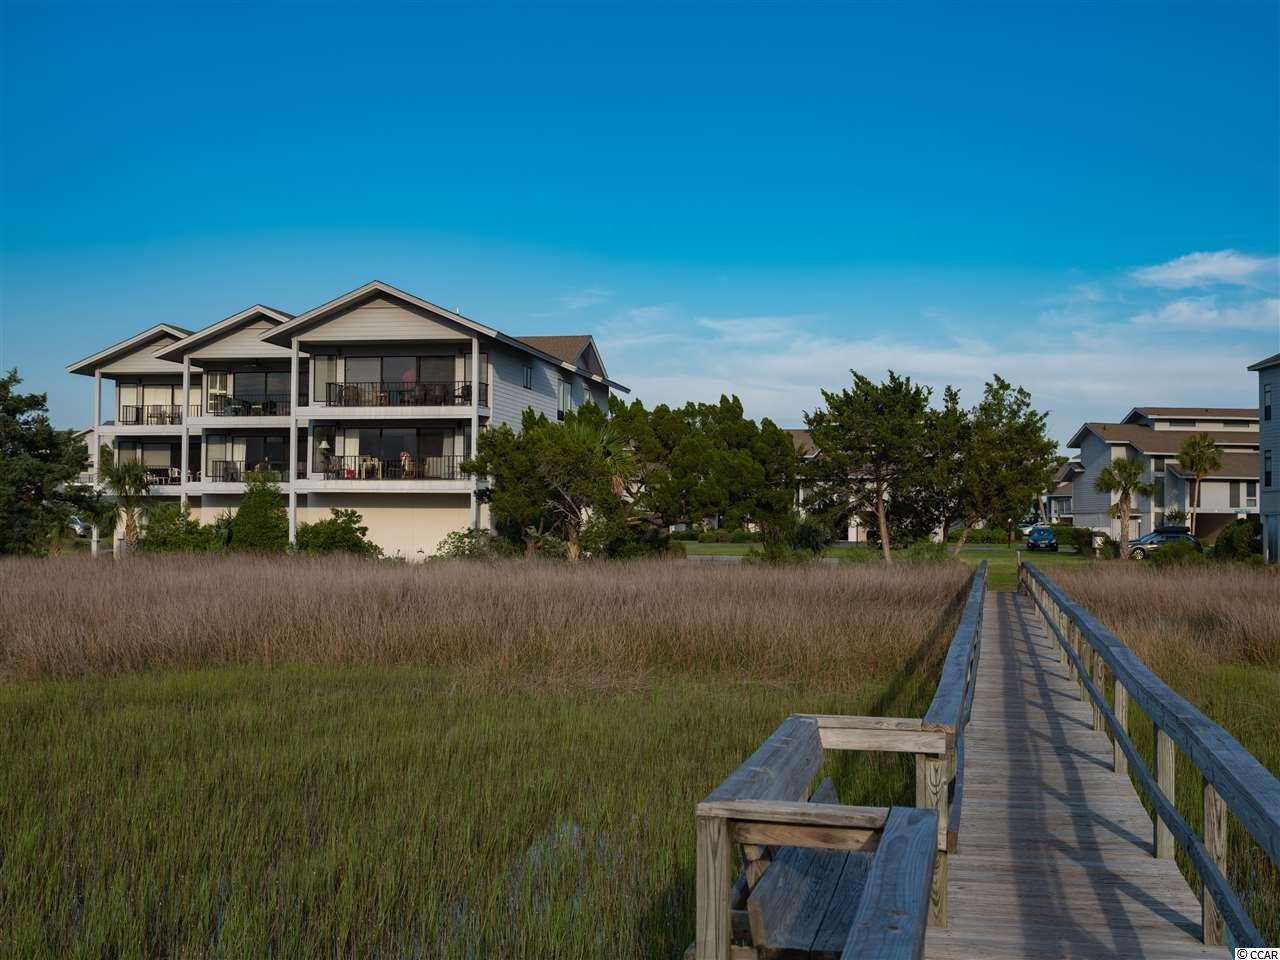 "Inlet Point is an exclusive tropical private gated oasis at the south end of Litchfield Beach, stretching from the Atlantic Ocean to the saltwater creeks and marsh. Litchfield Beach is known as the ""Golden Curve of the Grand Strand"" ! Named so for it's gently curving stretch and beautiful golden appearance created by the sun-kissed beach and by the golden yellow sea oats that grow wild in the dunes ! This fabulous second floor 3 bedroom, 2 bath villa sits overlooking the expansive marsh and creeks. Present owner has owned villa for almost 30 years. Huge 23'x14' garage storage room for beach and fishing gear. Peaceful relaxing picturesque sunsets daily ! Right next to the community boardwalk and dock. The beach and ocean are just steps away. Other amenities include a clubhouse, swimming pool and 24 hour manned security gate. Endless family fun on the beach and in the creeks enjoying God's abundant wildlife and nature ! Biking, jogging, walking and golf carting through the well landscaped grounds. Golf, shopping, restaurants. the Intracoastal Waterway and Brookgreen Gardens are all just about five minutes away ! Come enjoy all that Litchfield Beach has to offer !"